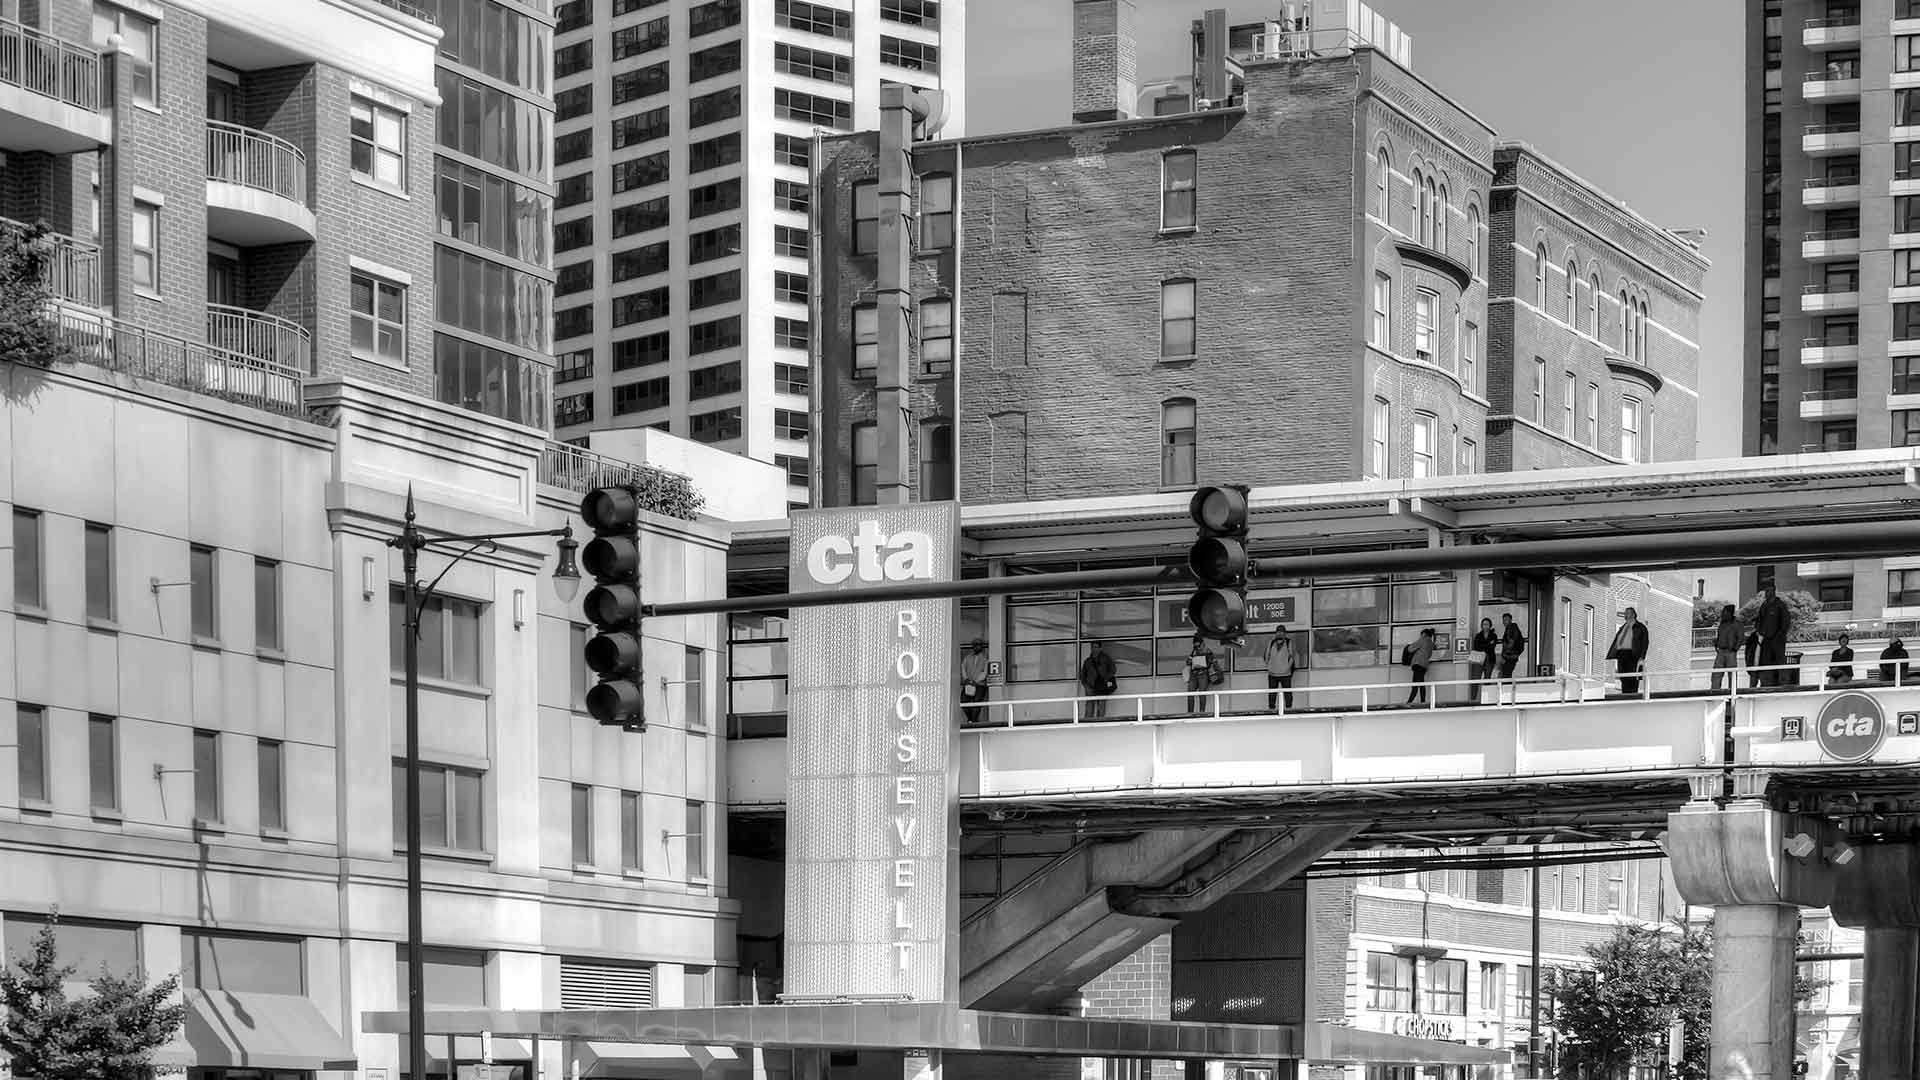 The CTA Roosevelt elevated train stop crosses over Roosevelt road with tall buildings in front and behind it.